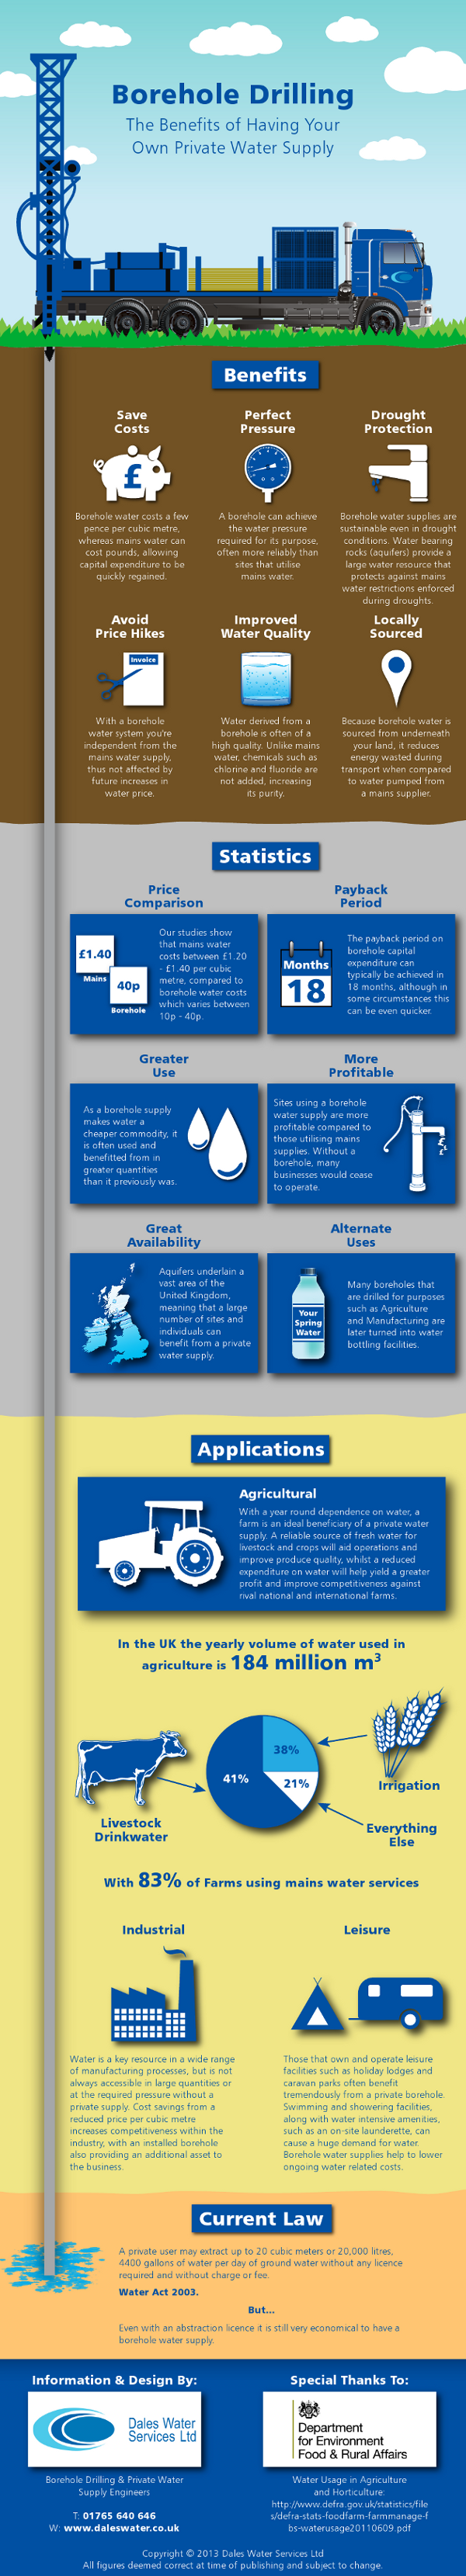 Benefits-of-having-a-Borehole600px